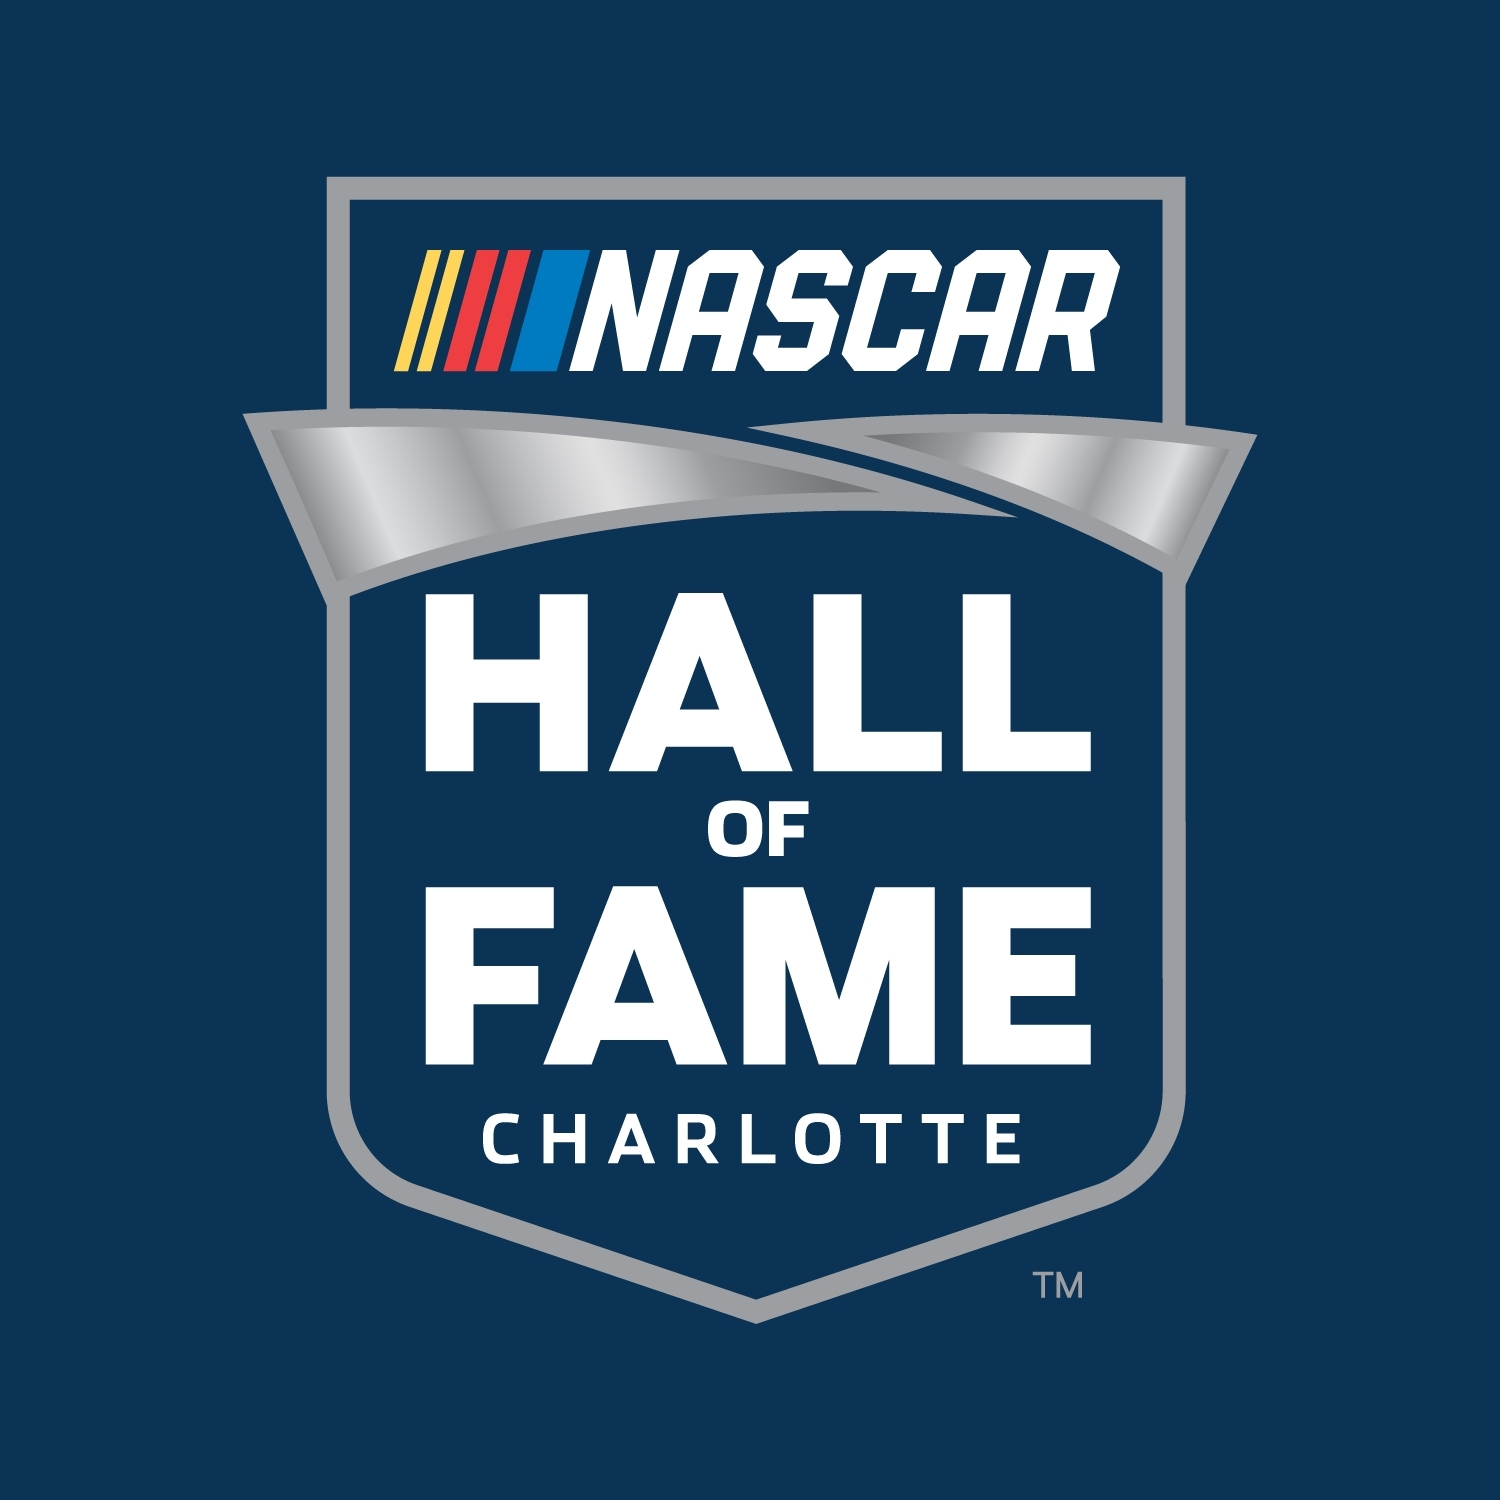 NASCAR Hall of Fame Team